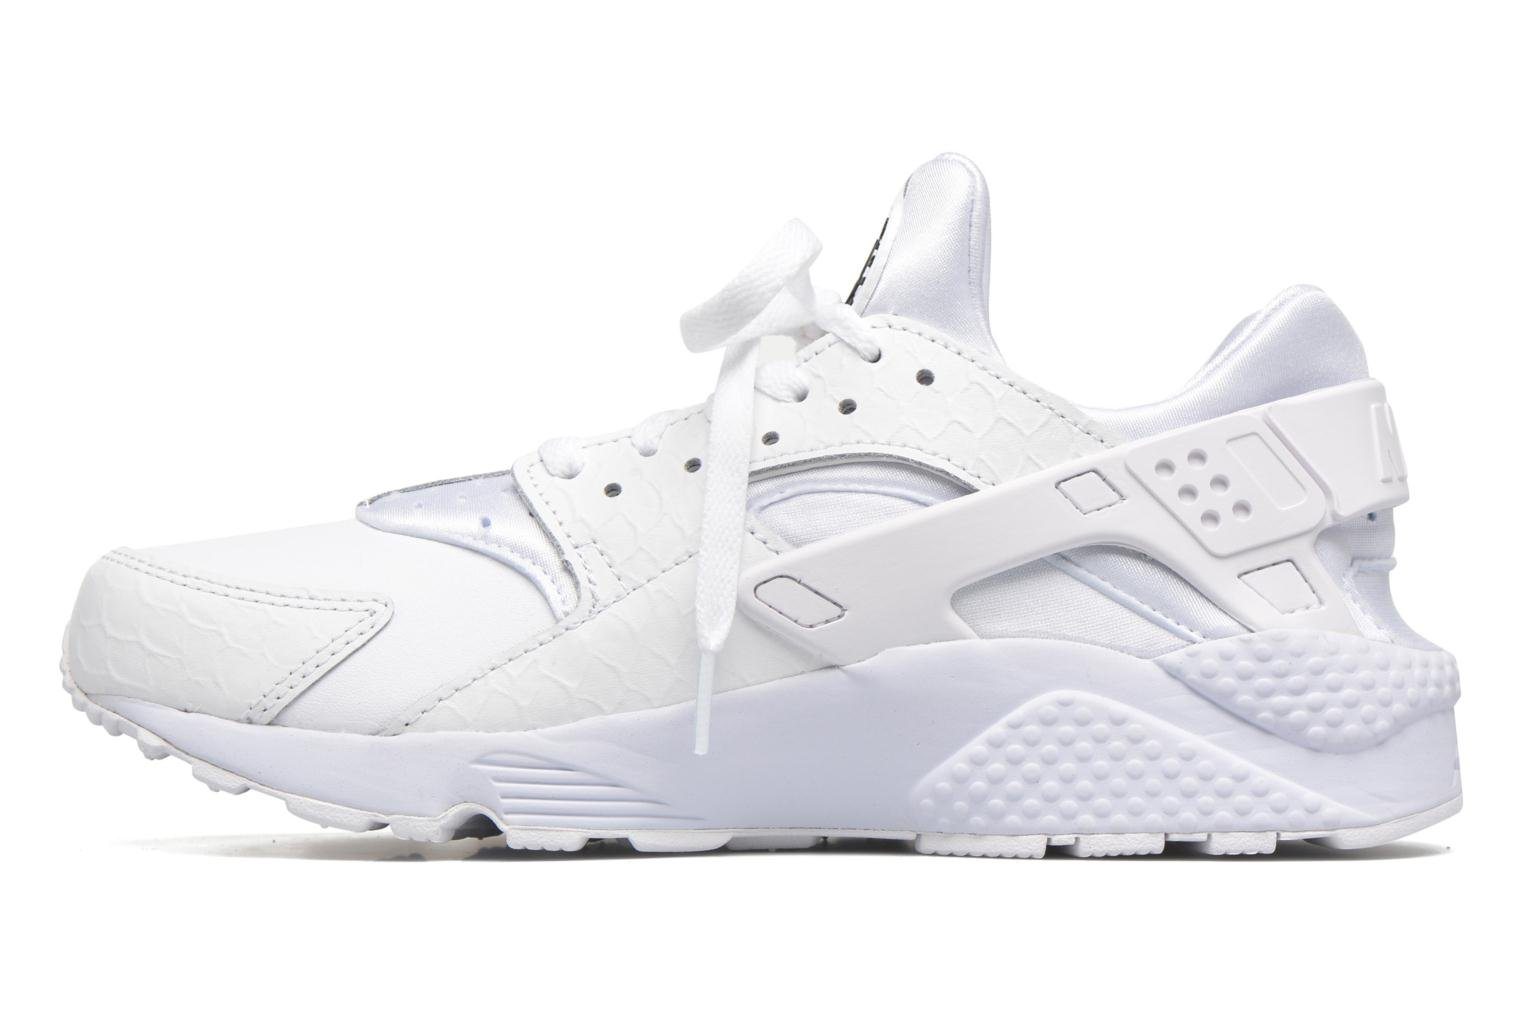 Nike Air Huarache Run Prm White/white-Black